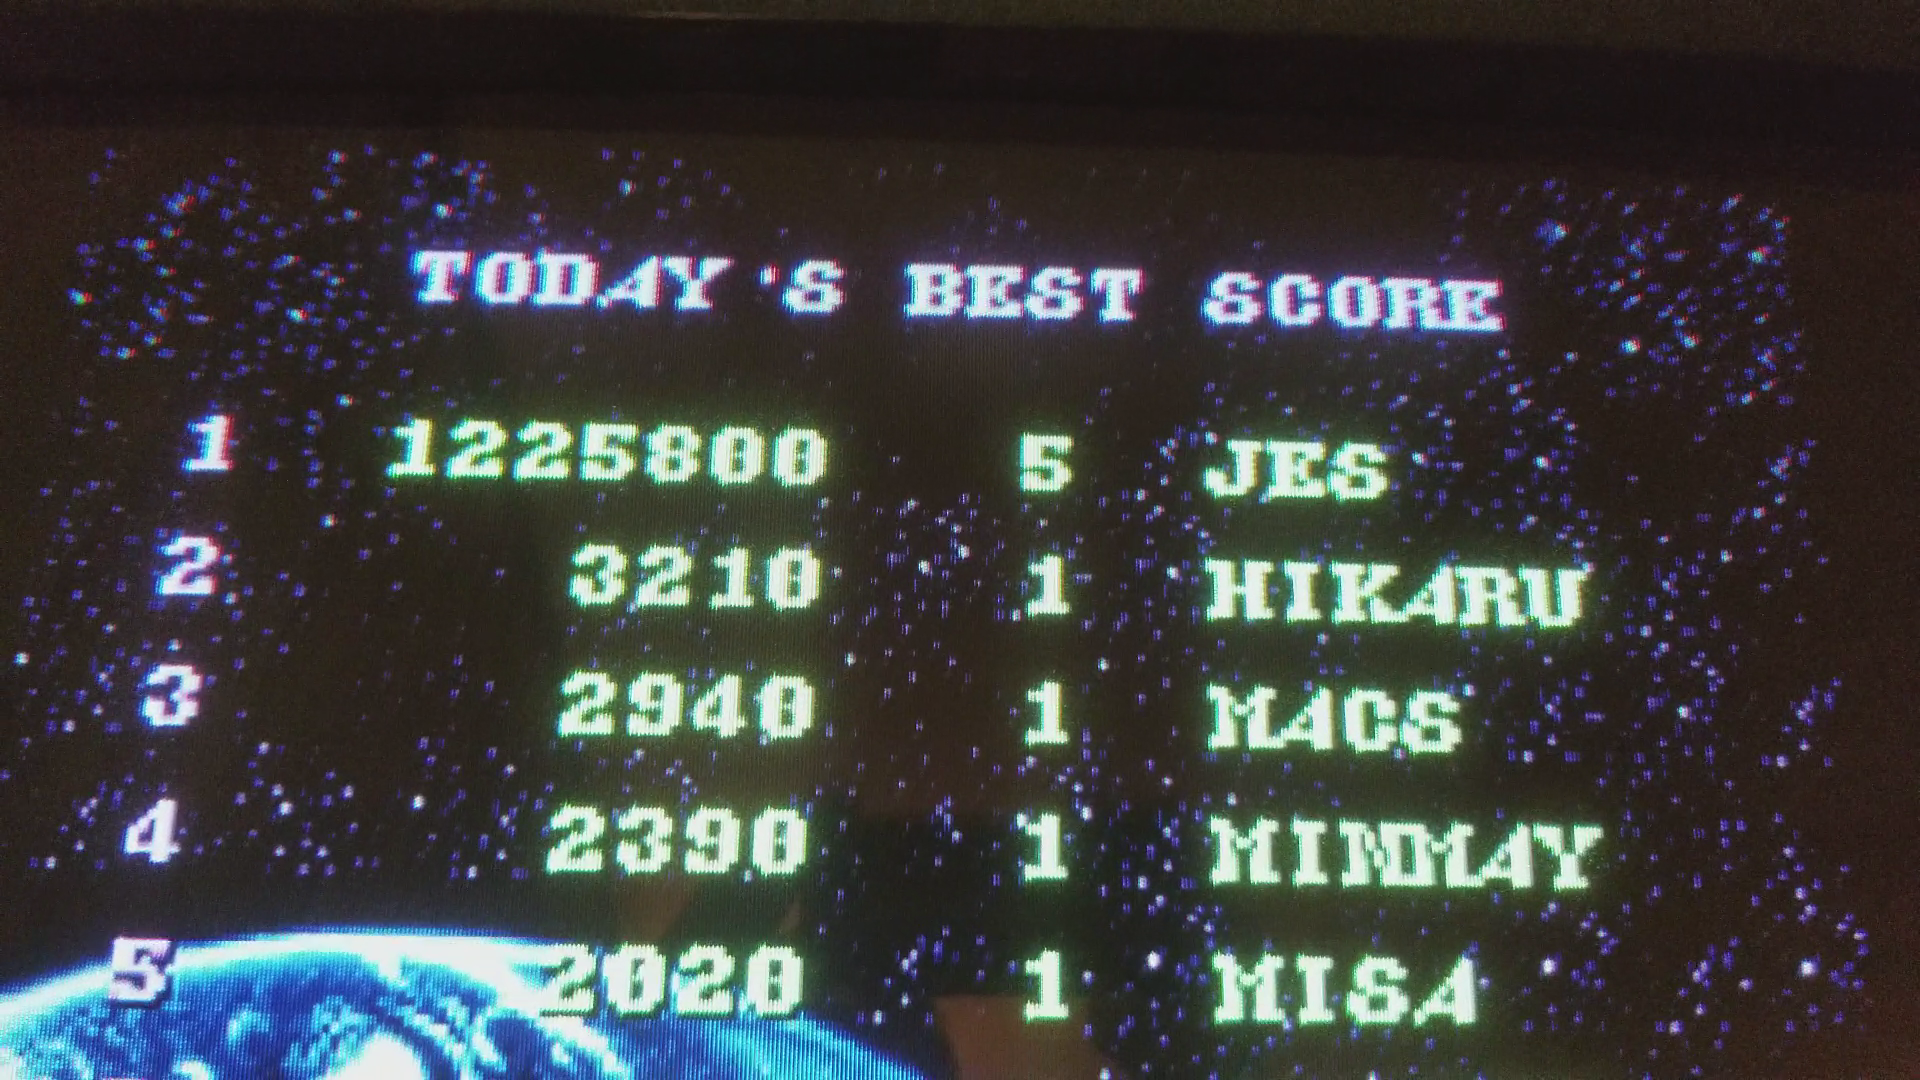 JES: Super Spacefortress Macross [macross] (Arcade Emulated / M.A.M.E.) 1,225,800 points on 2018-02-01 21:47:13